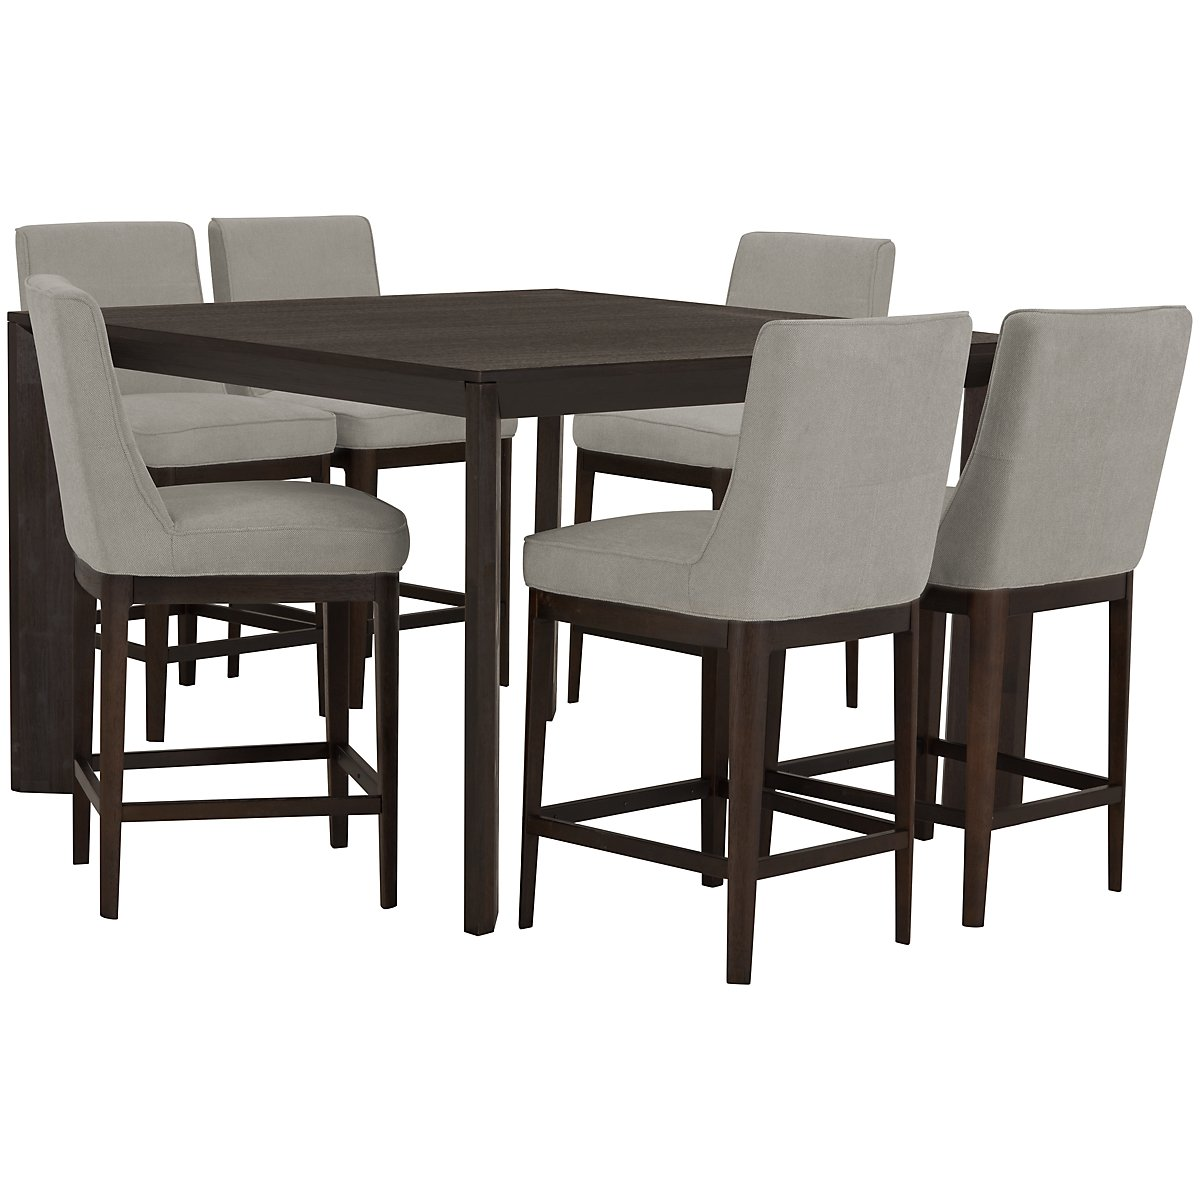 City furniture rylan dark tone high dining table for Html table th always on top